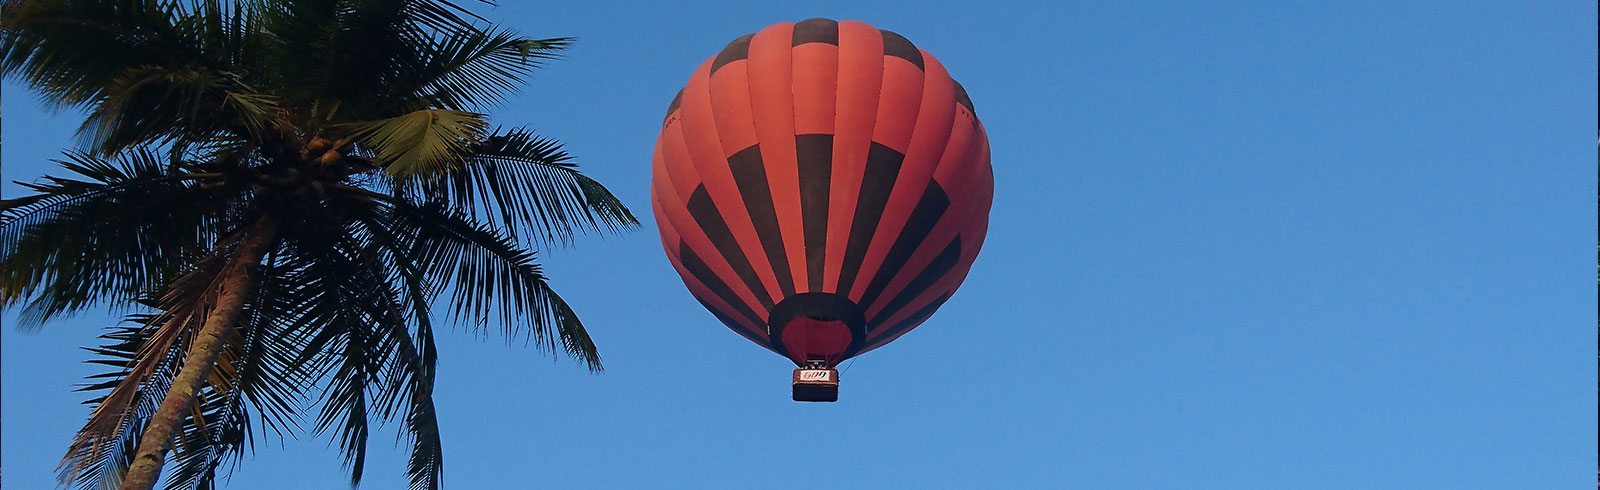 Hot Air Ballooning in India